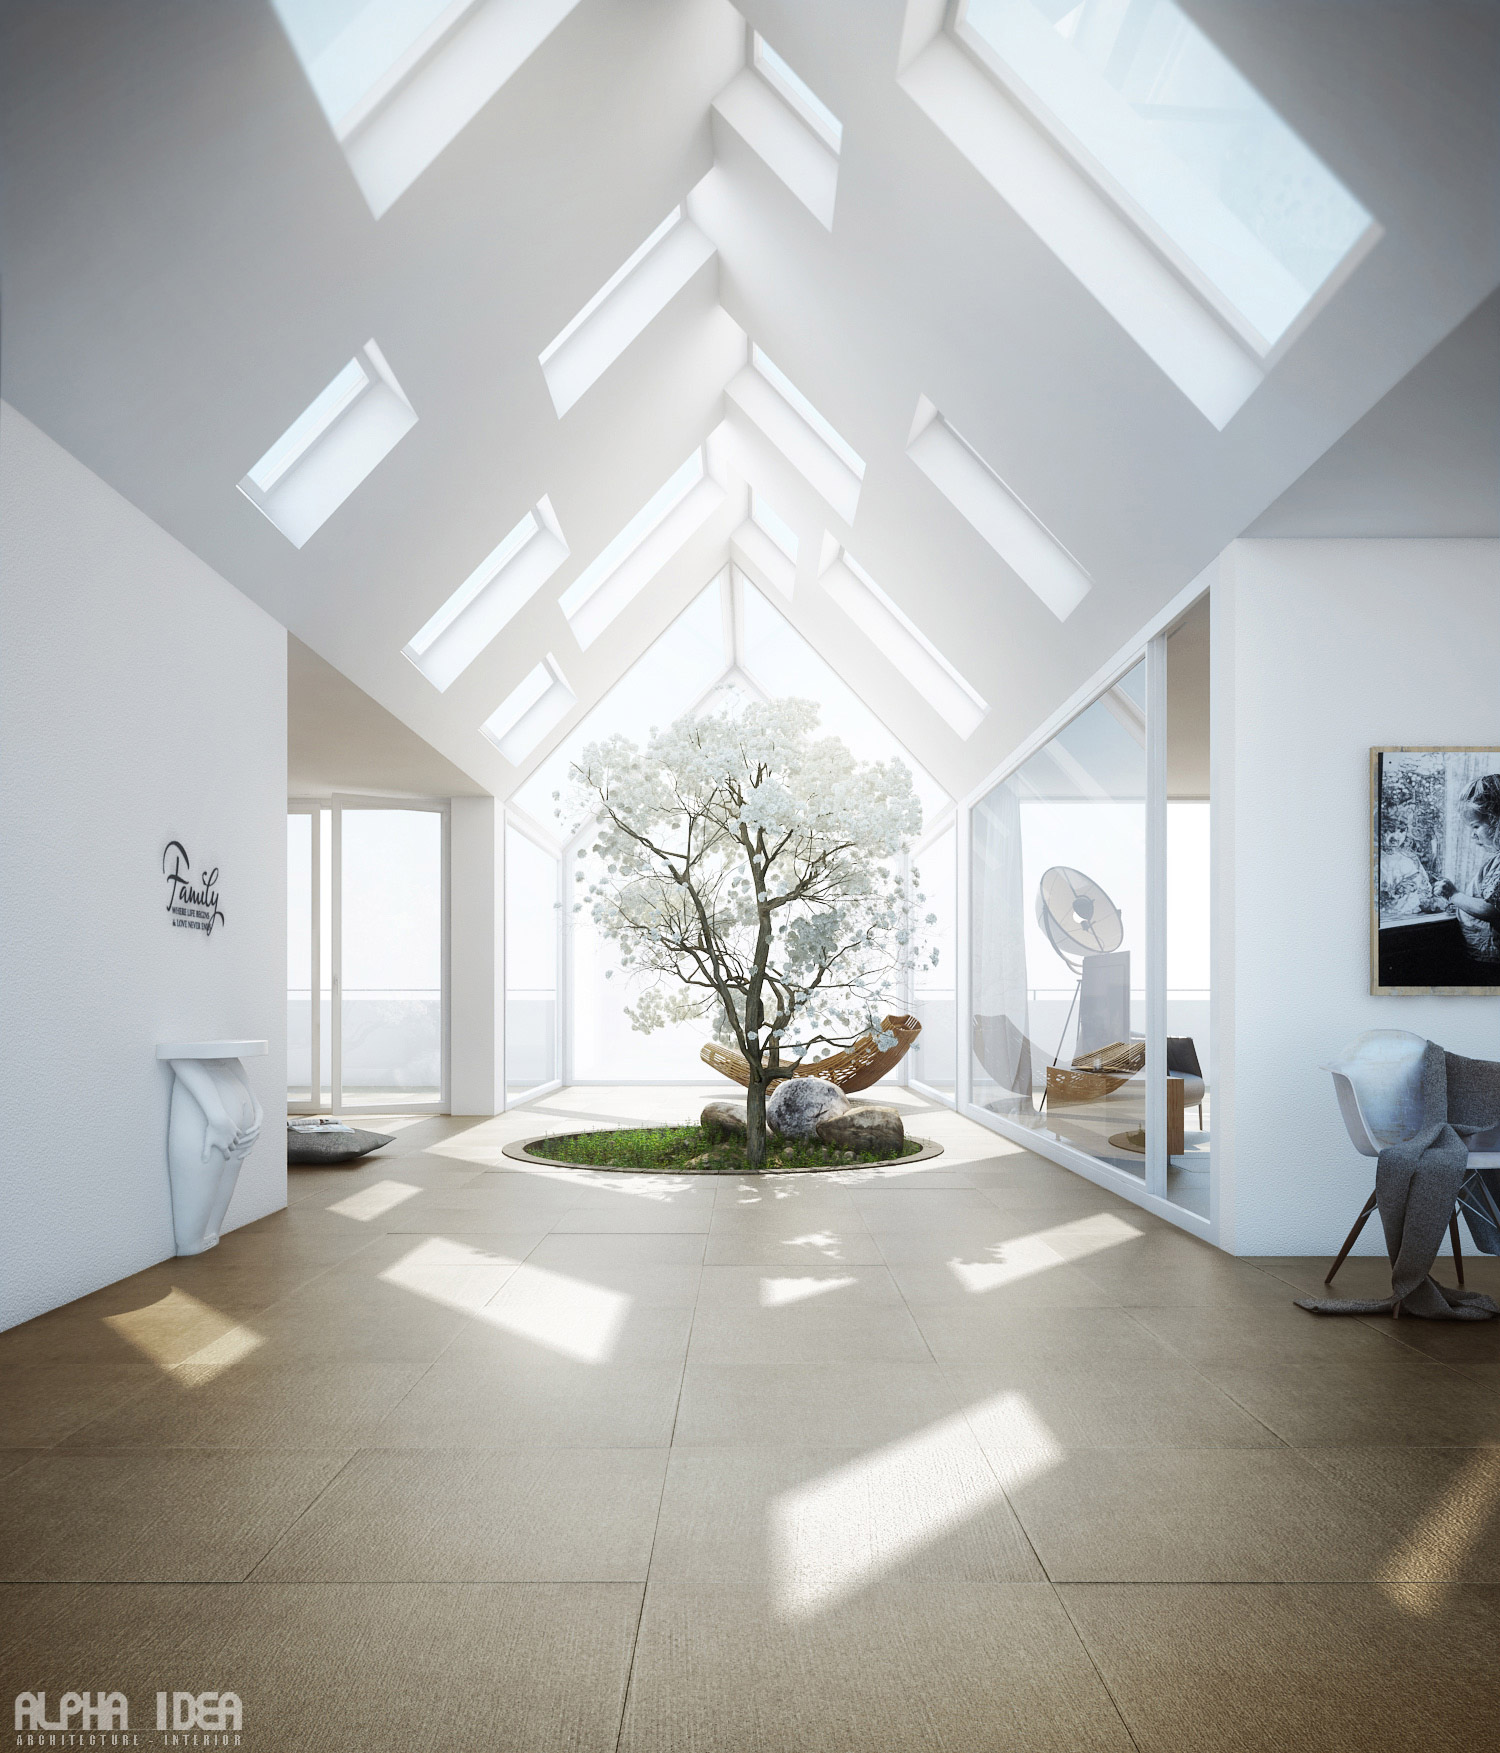 20 Trendy Ideas For A Home Office With Skylights: Unique Home With Skylights And Central Courtyard